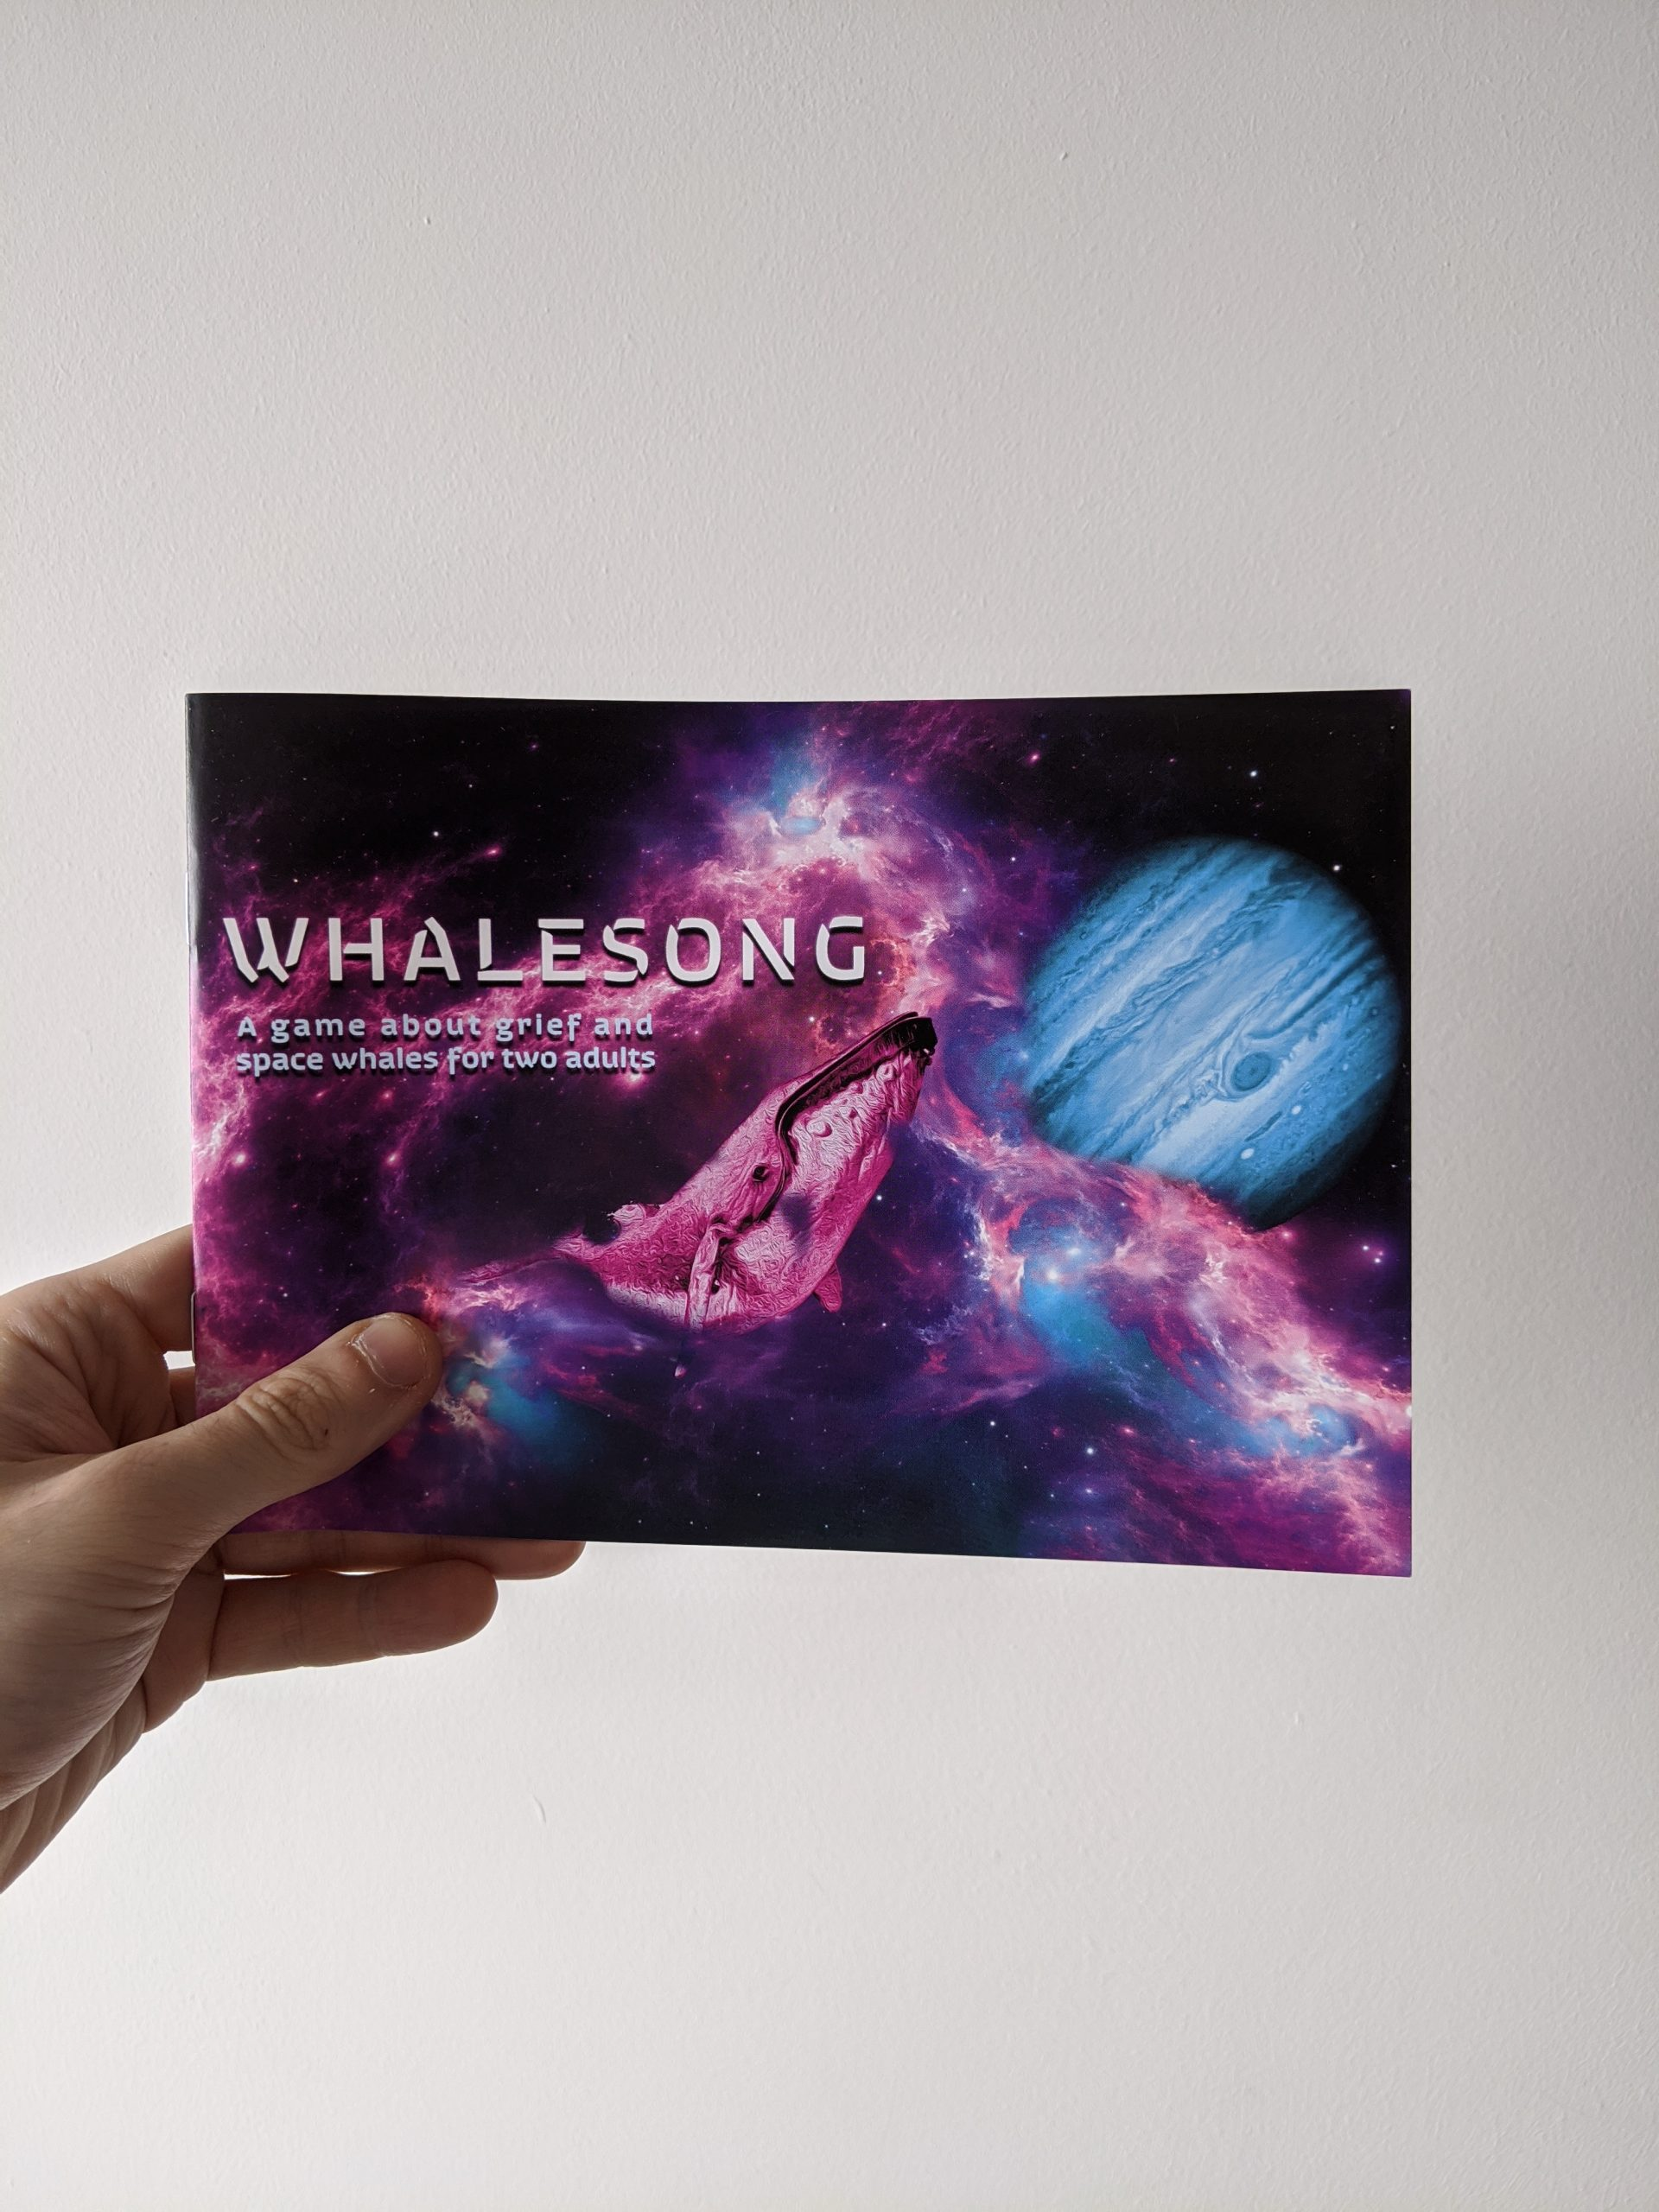 Whalesong